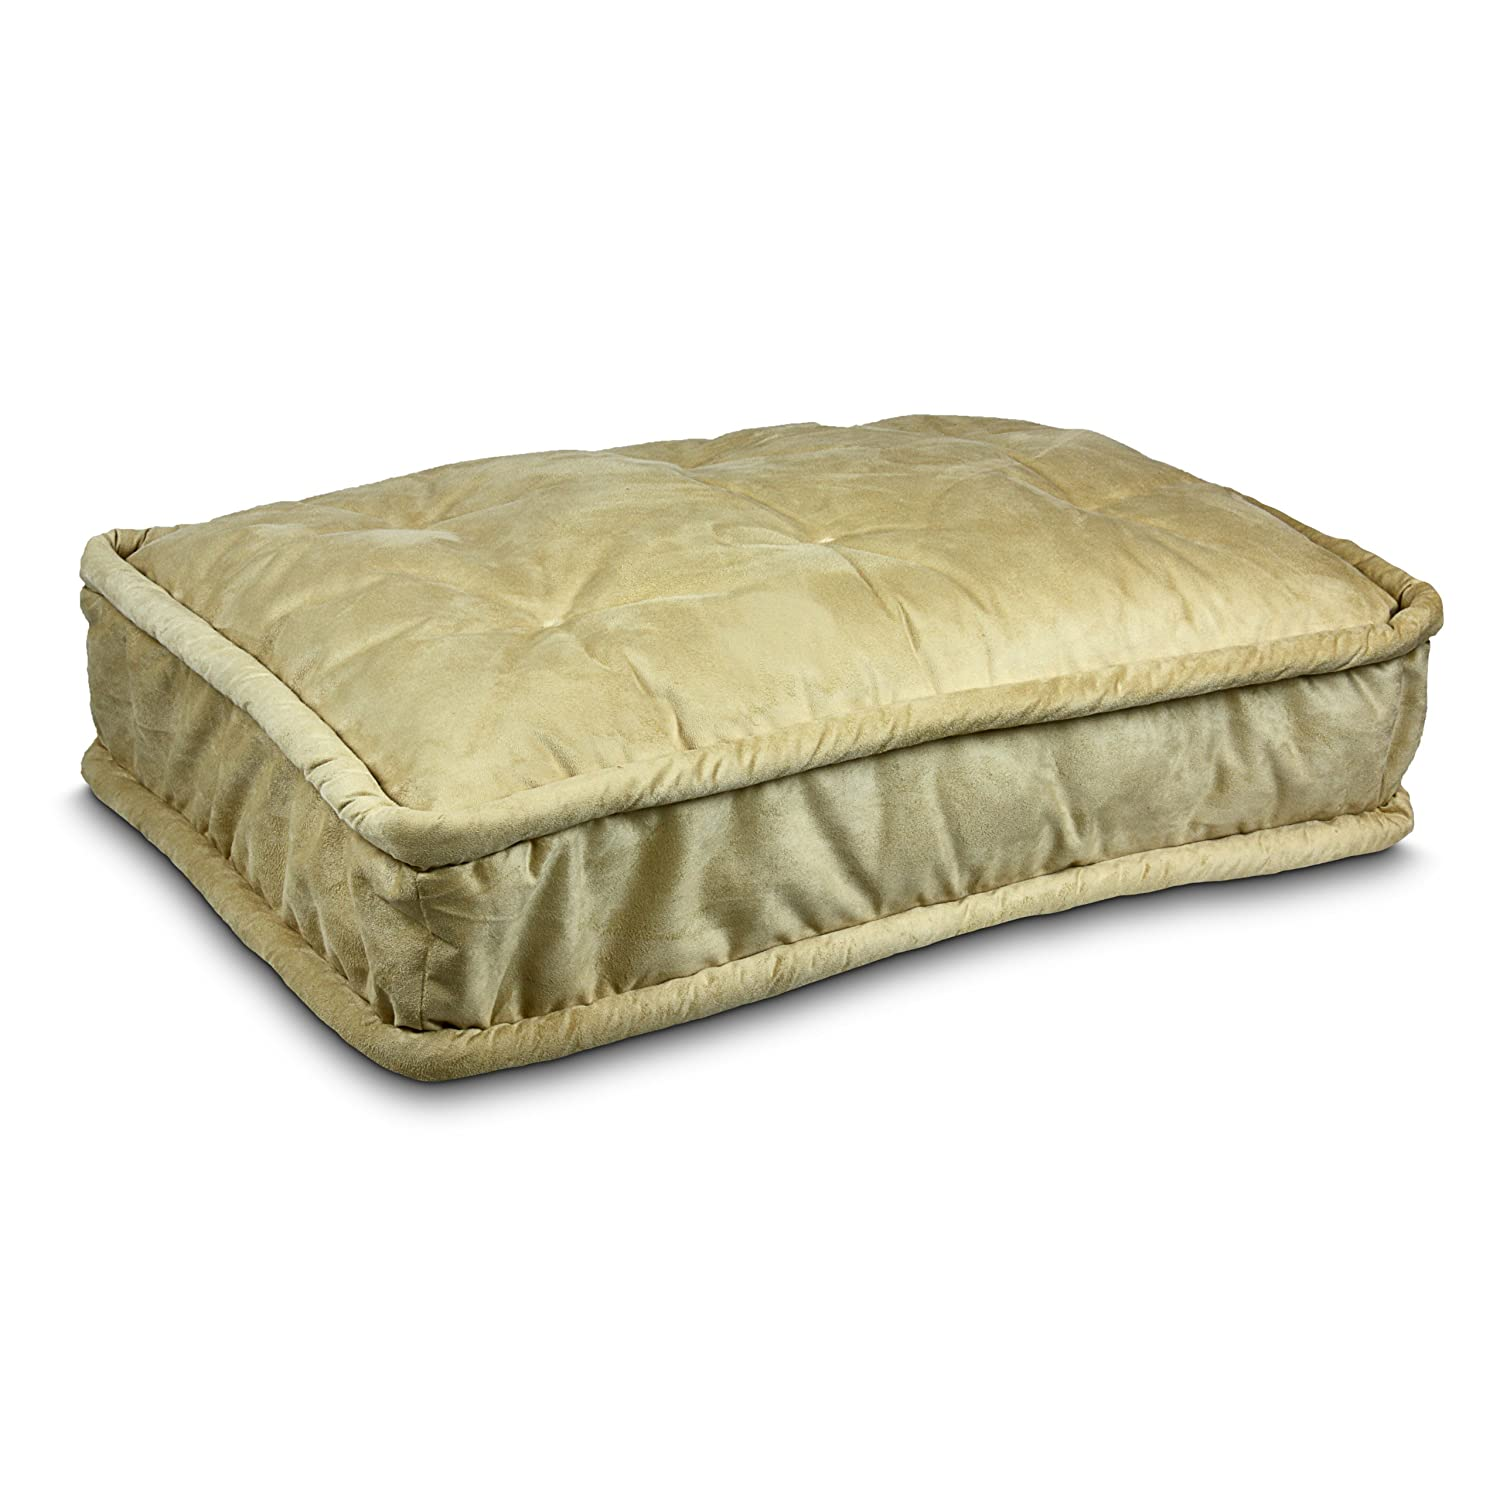 Large Snoozer 42792 Large Pillow Top Pet Bed, Butter